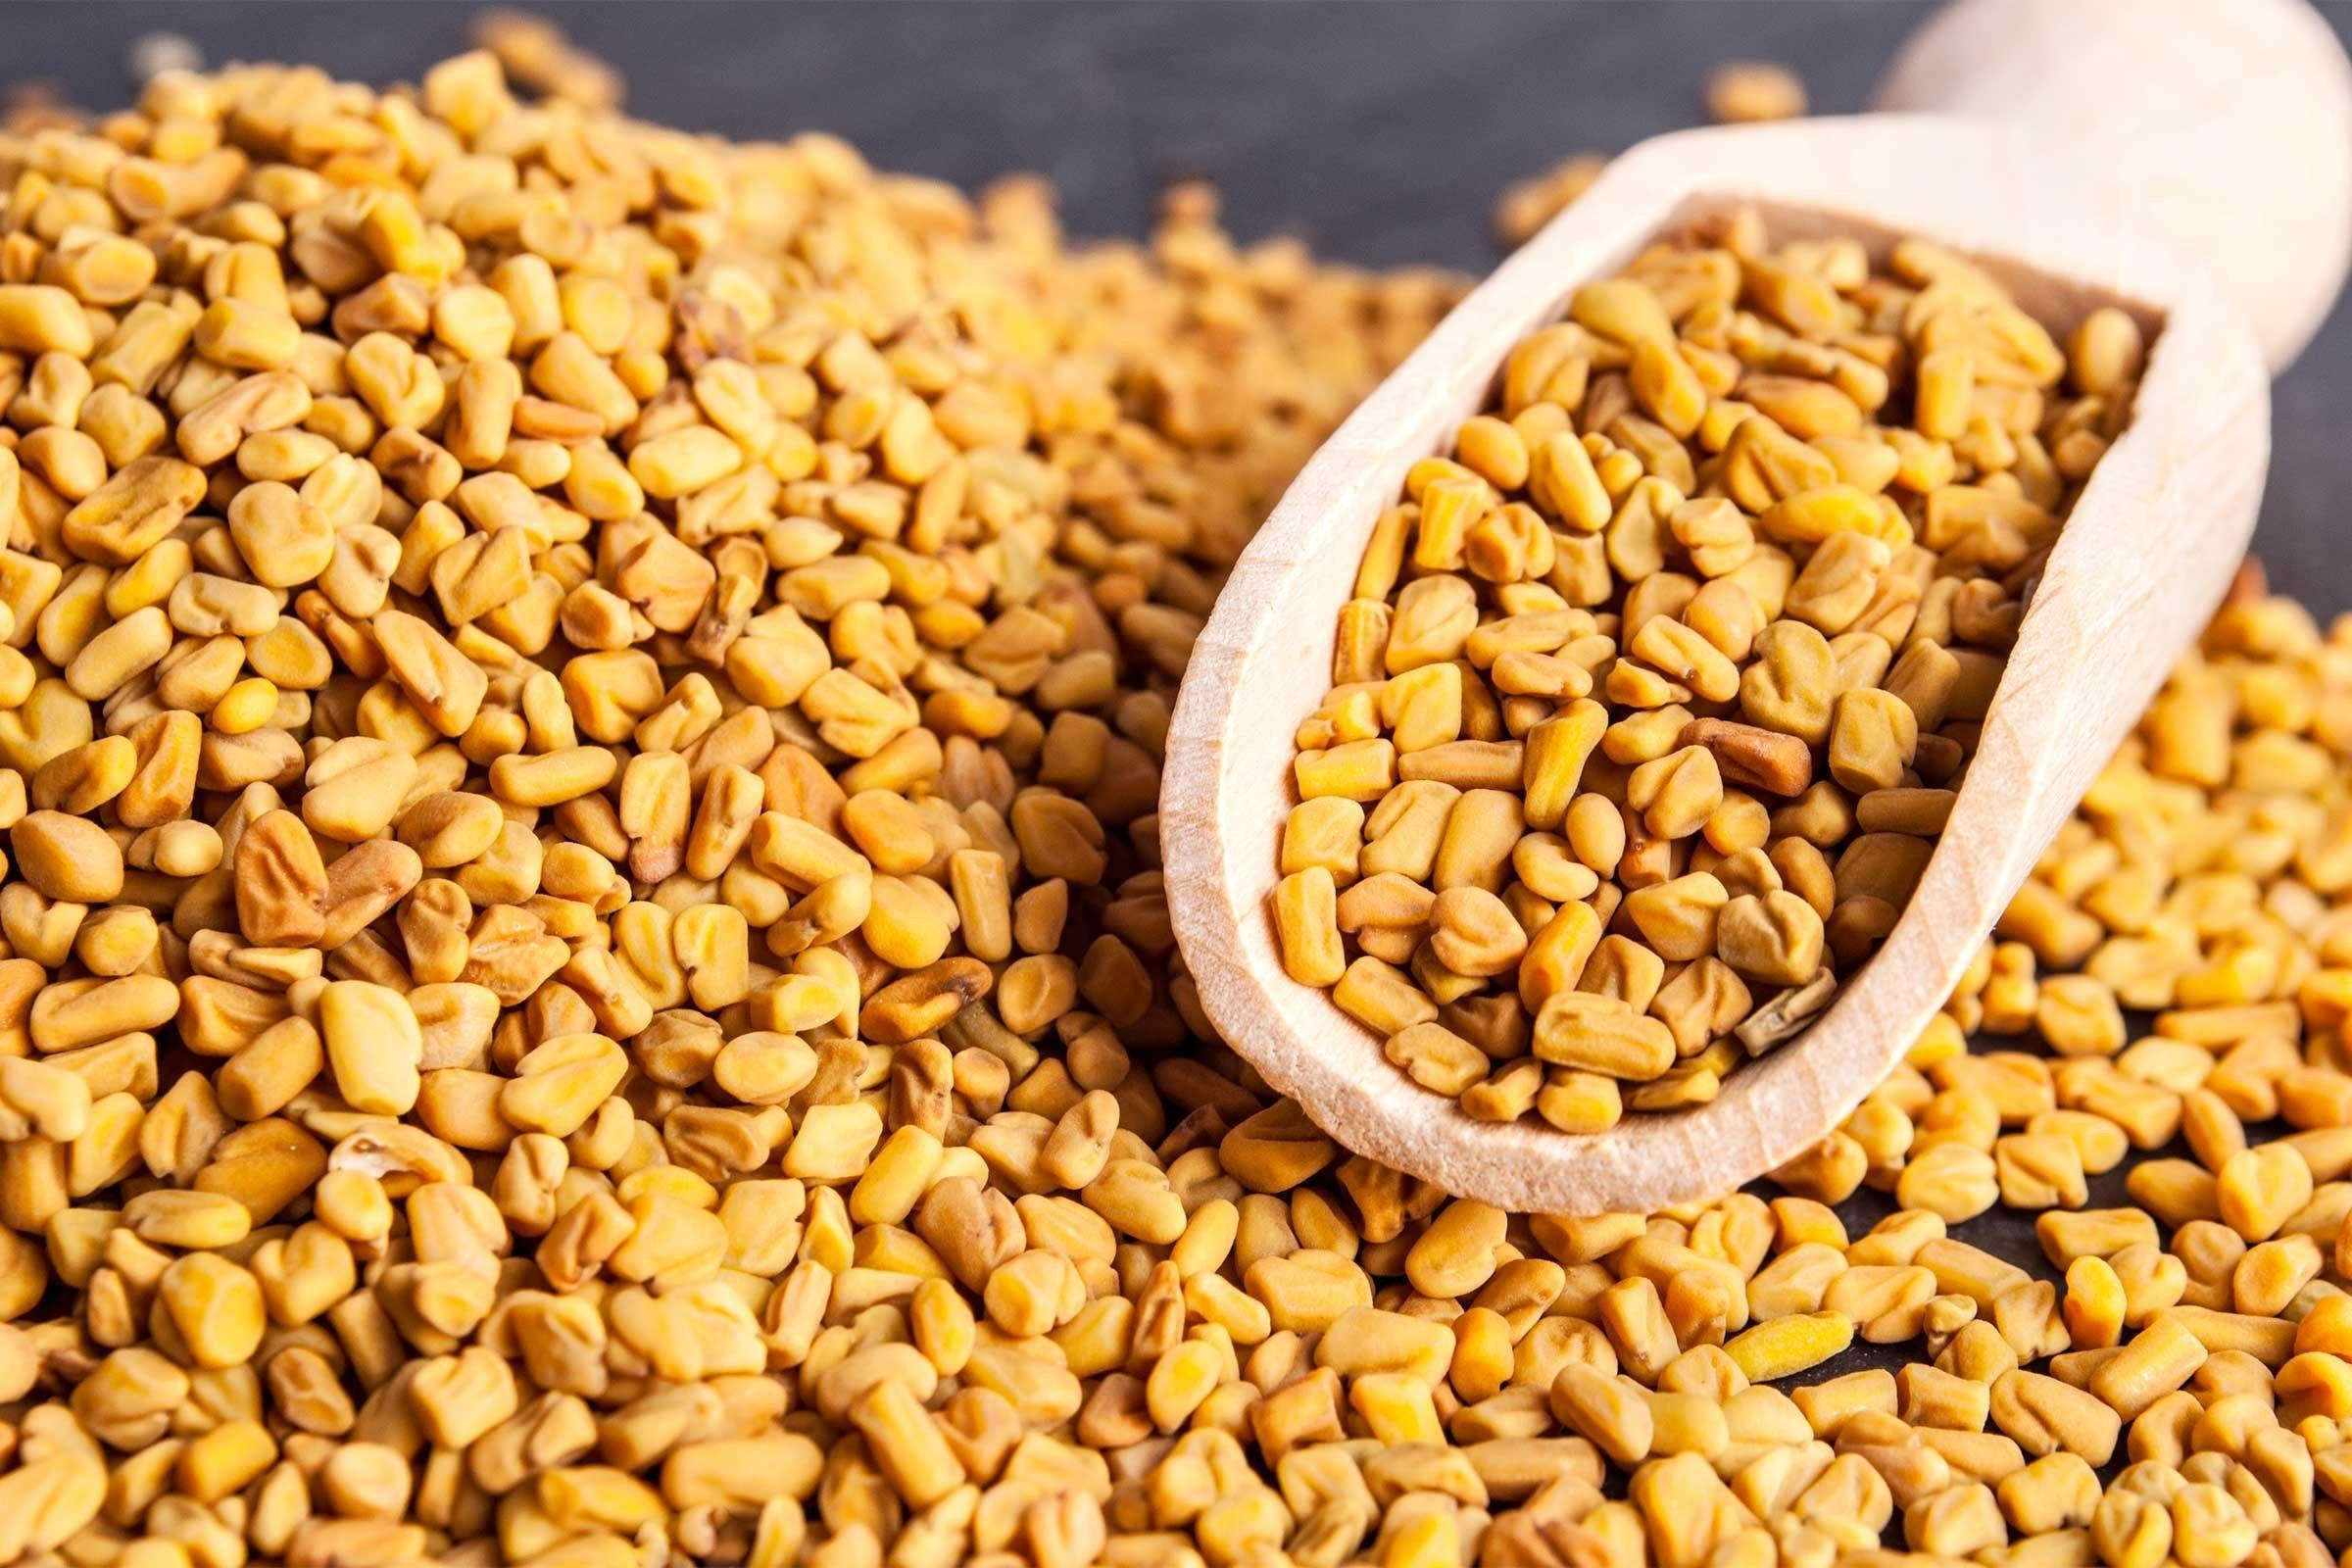 Can Fenugreek Seeds Cure Diabetes